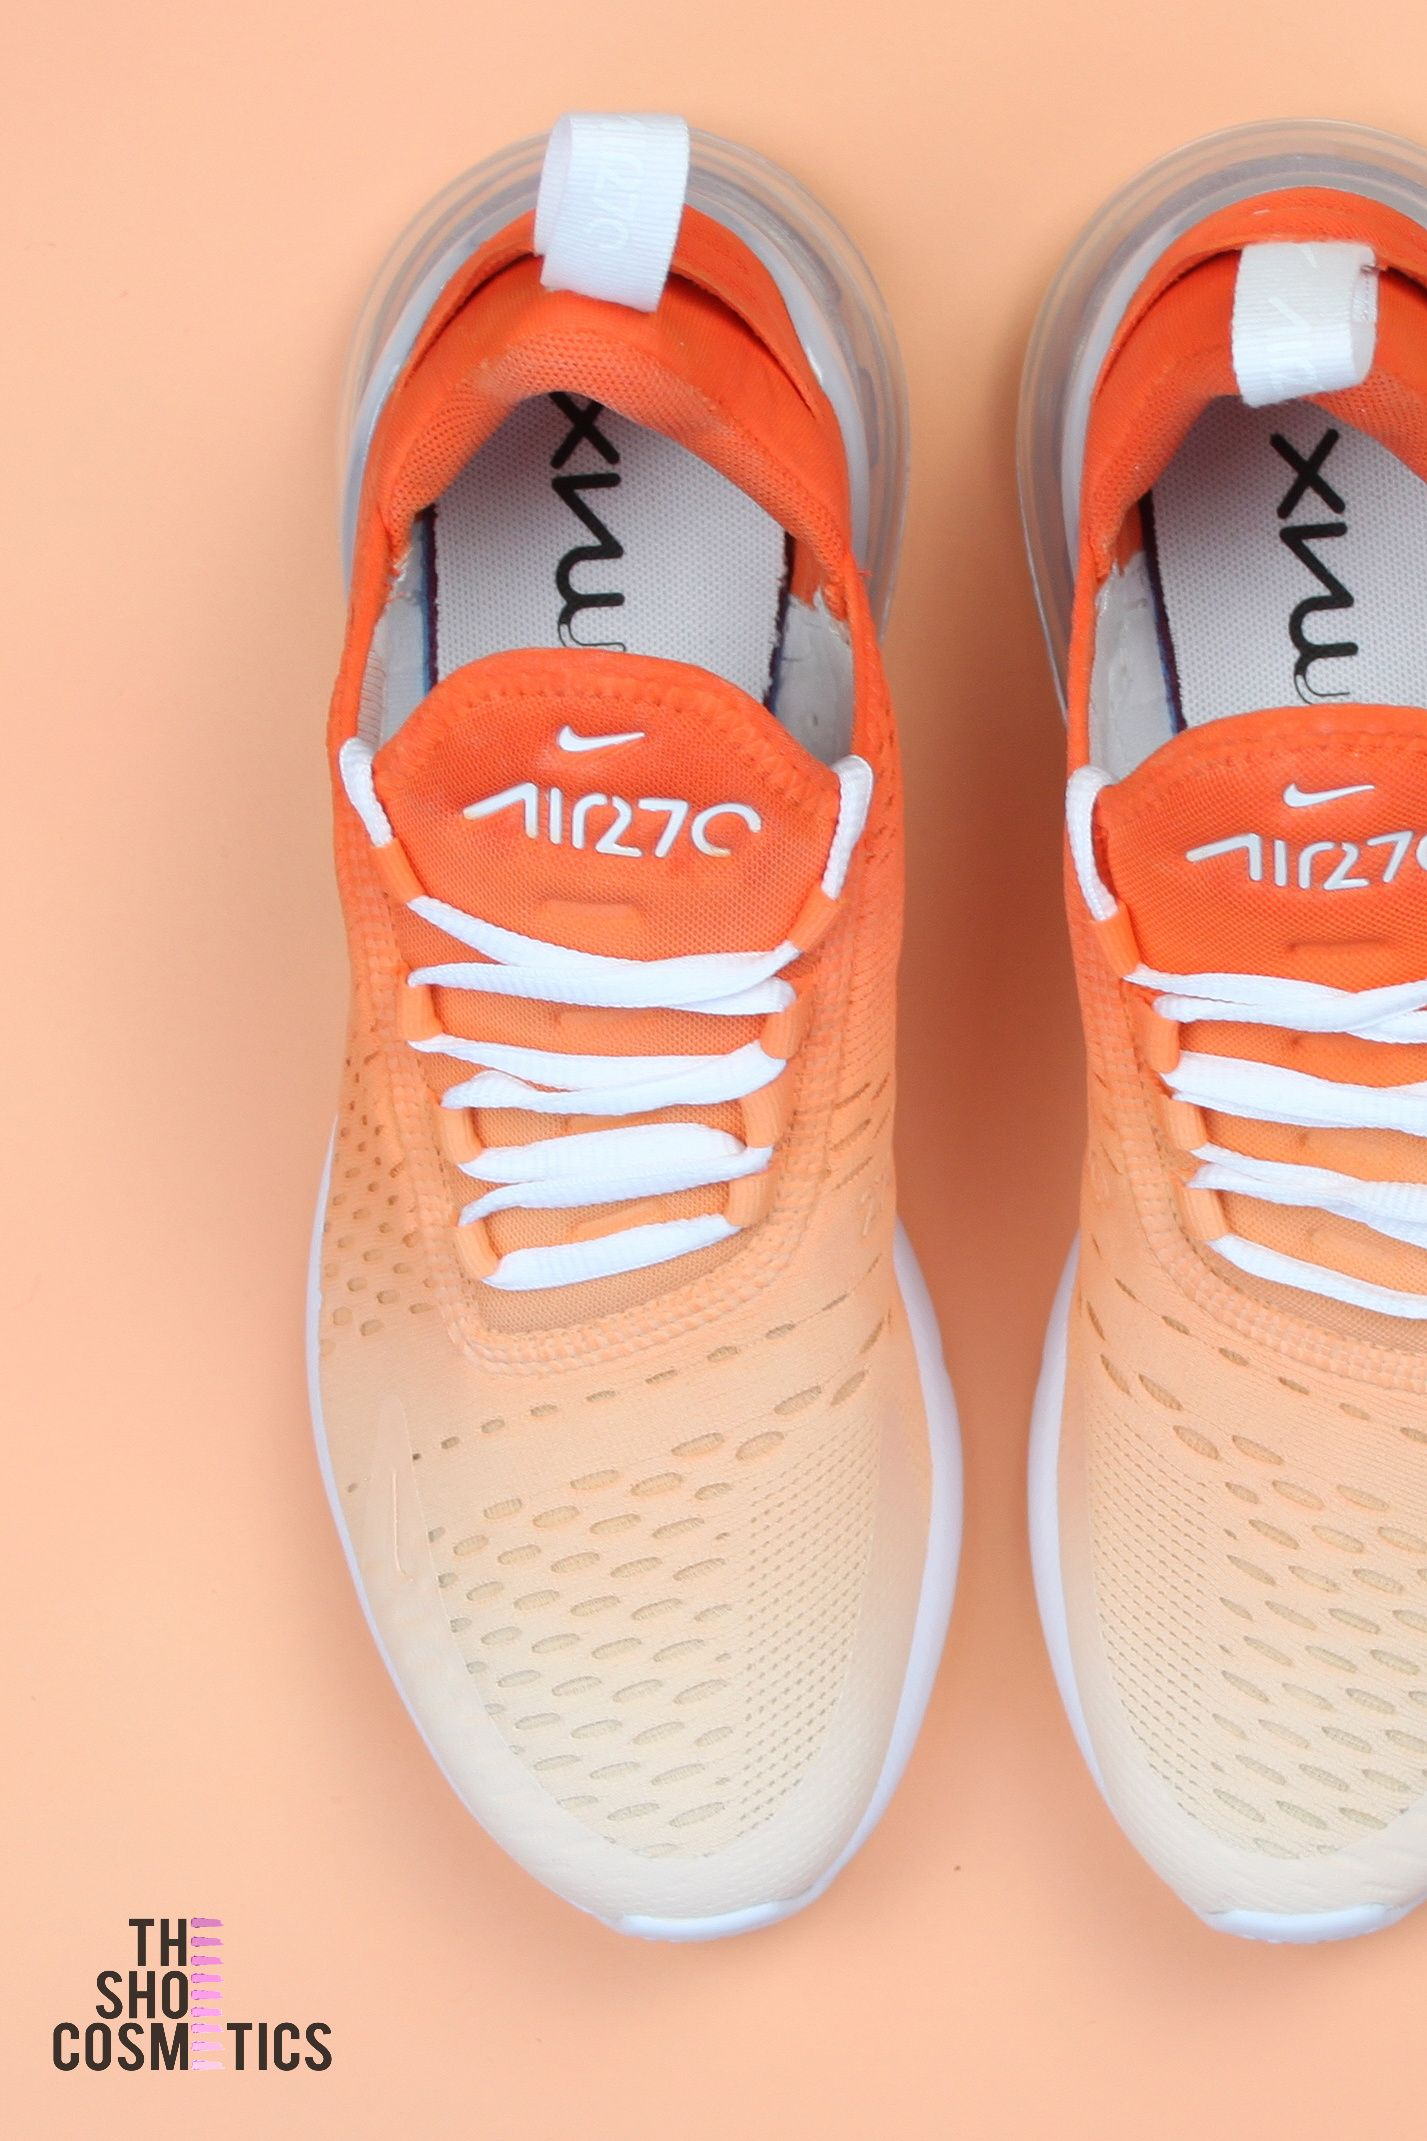 info for 24122 0b1cb In 2019 Custom Orange 270 s Ombre Sneakers Max Nike Air HqxHYp